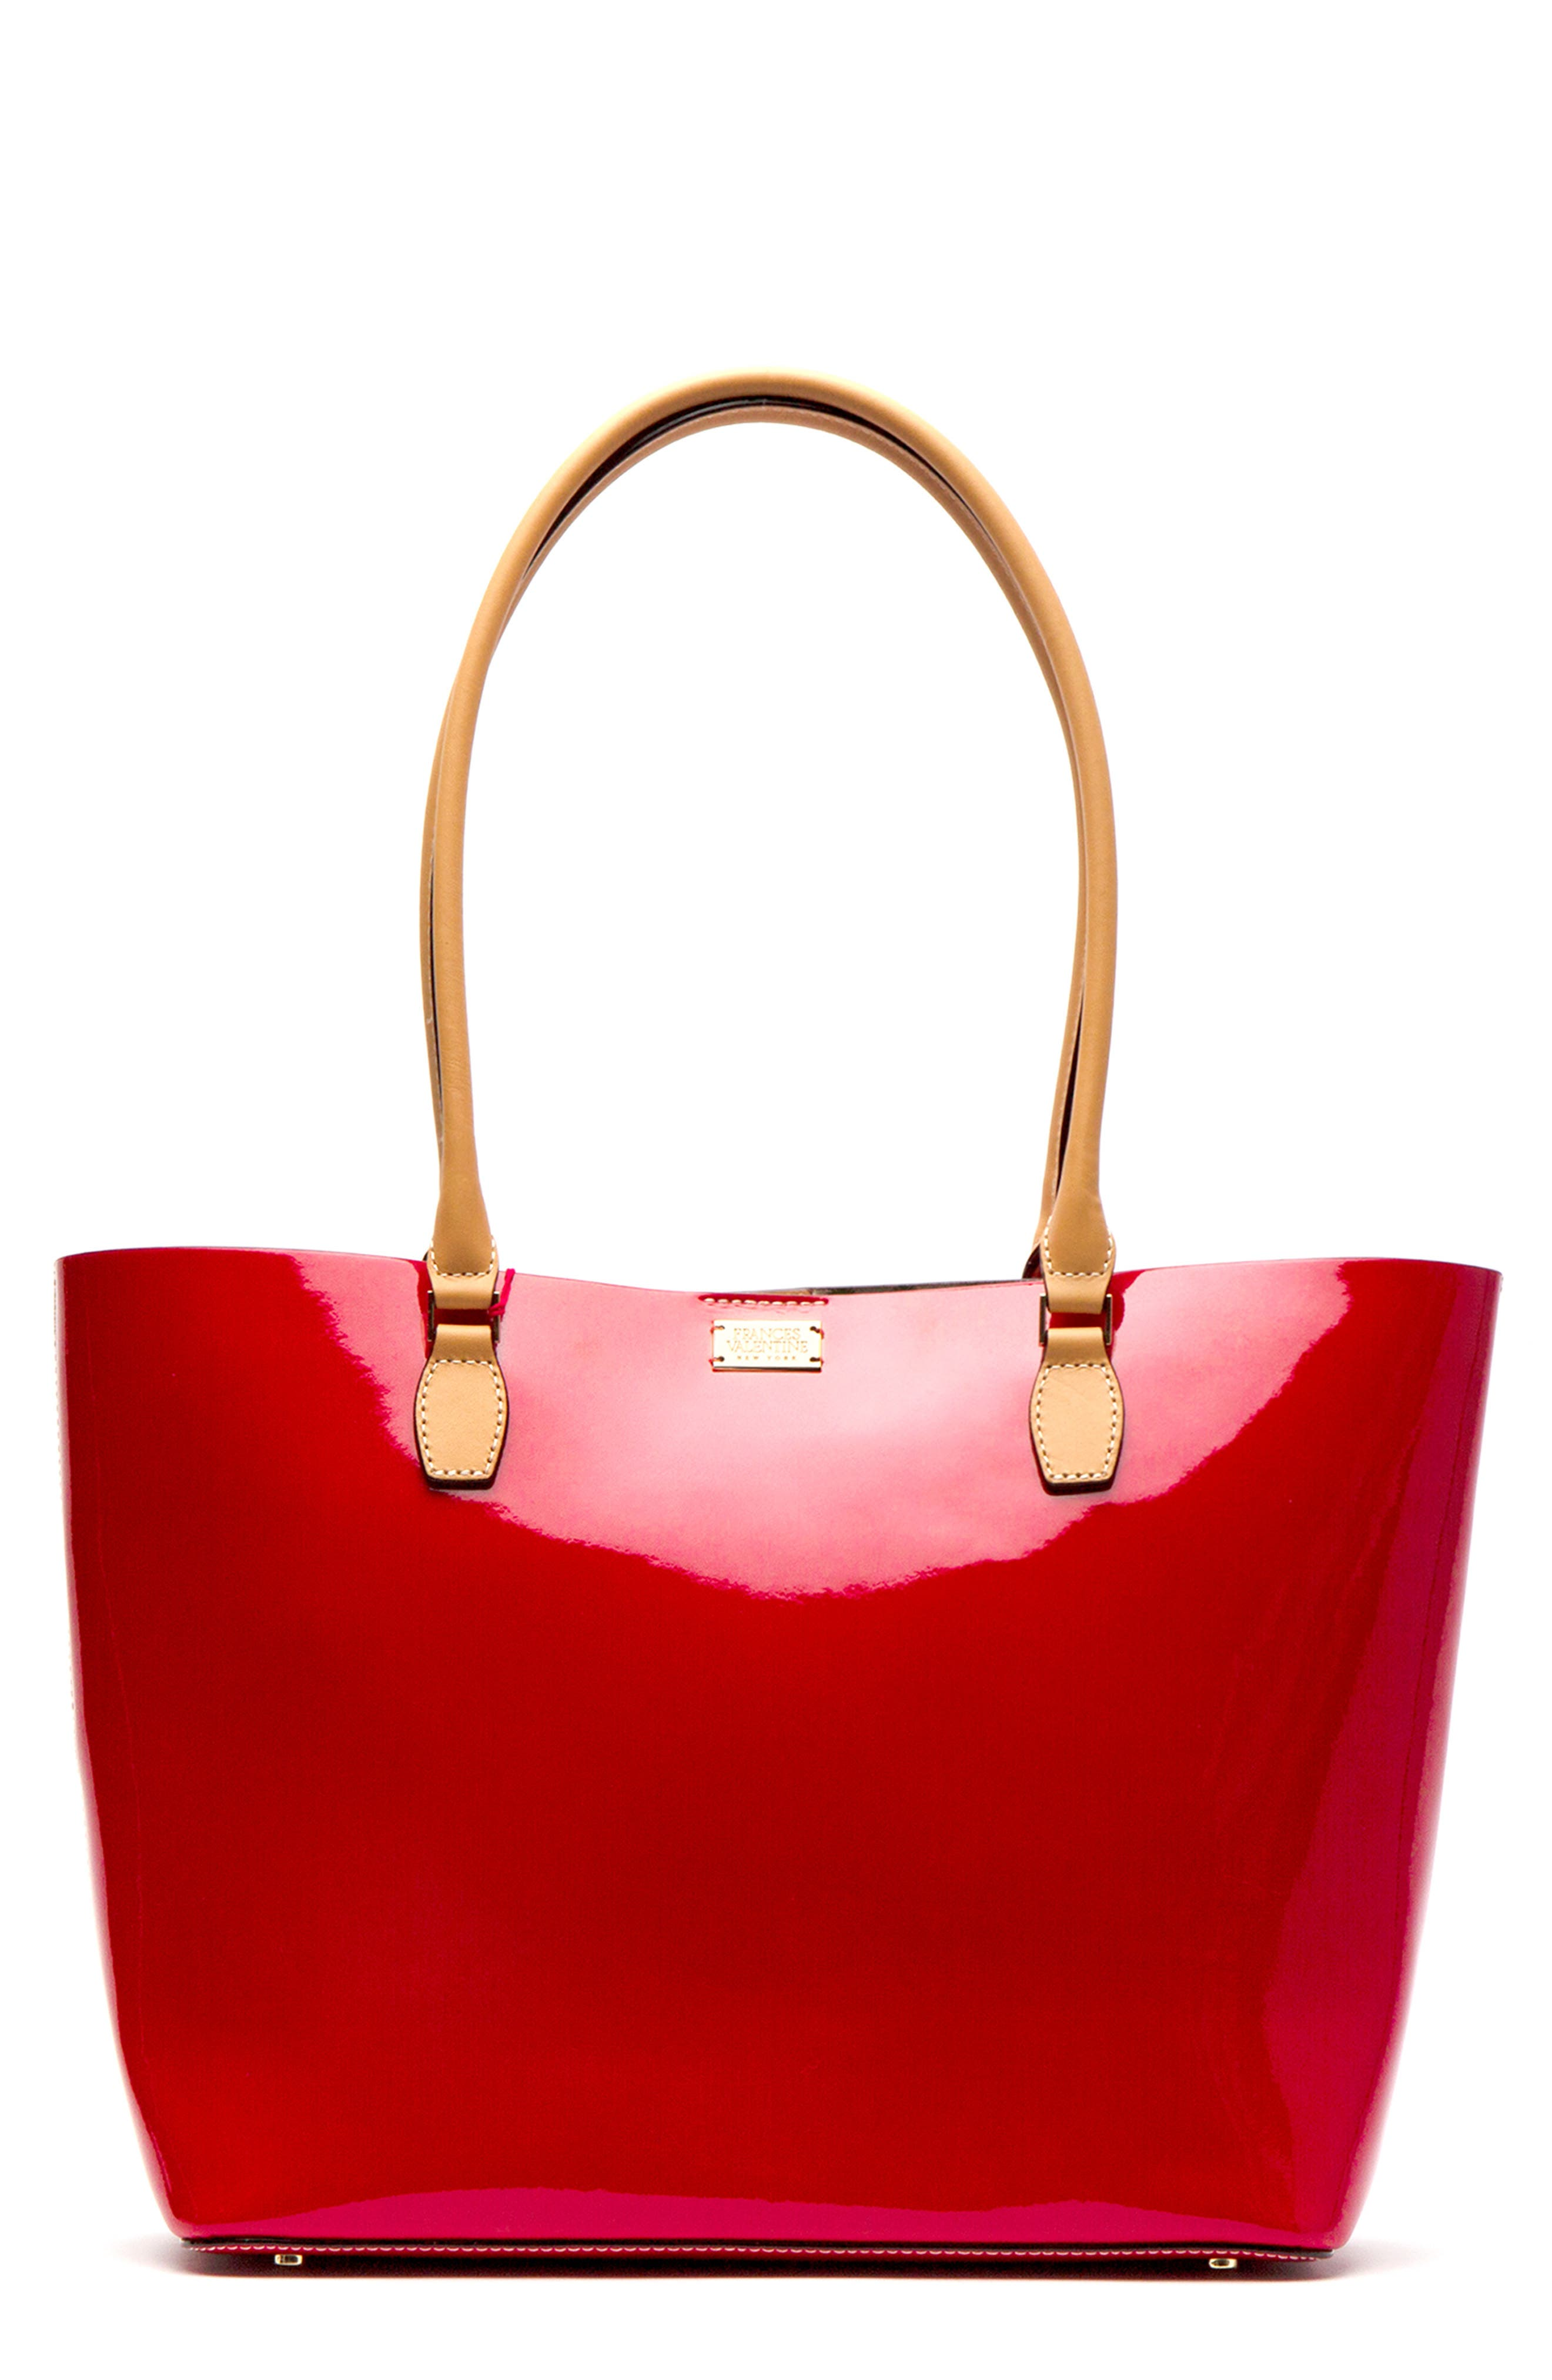 Frances Valentine Medium Trixie Patent Leather Tote - Red